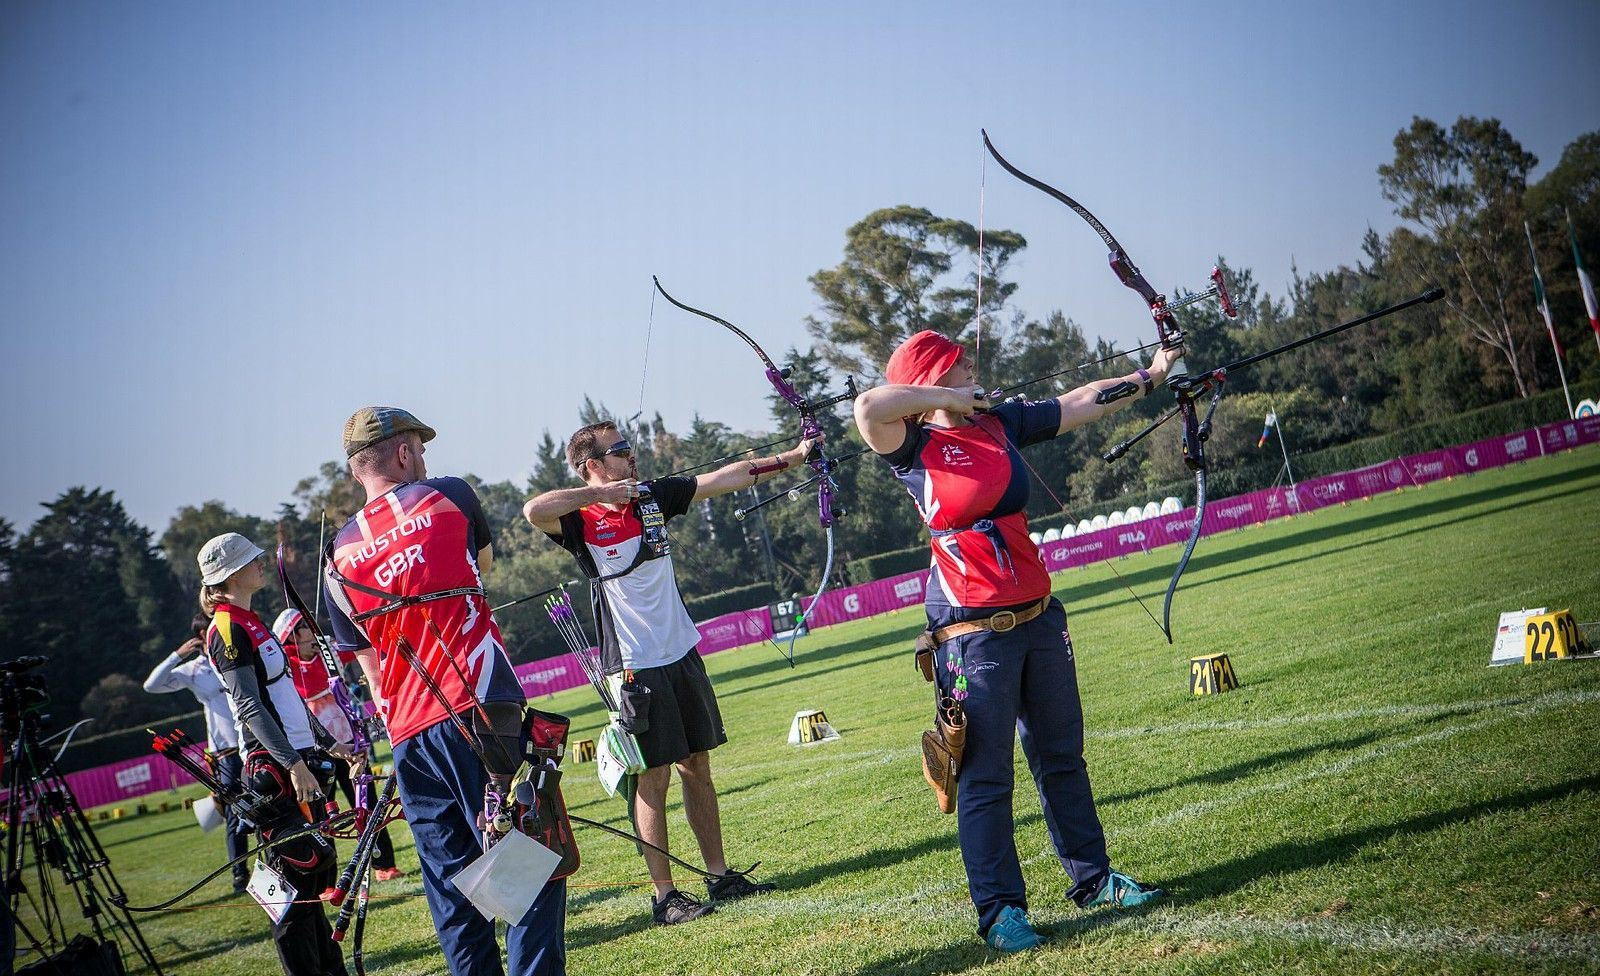 Day six of the World Archery Championships featured a packed mixed team schedule ©World Archery